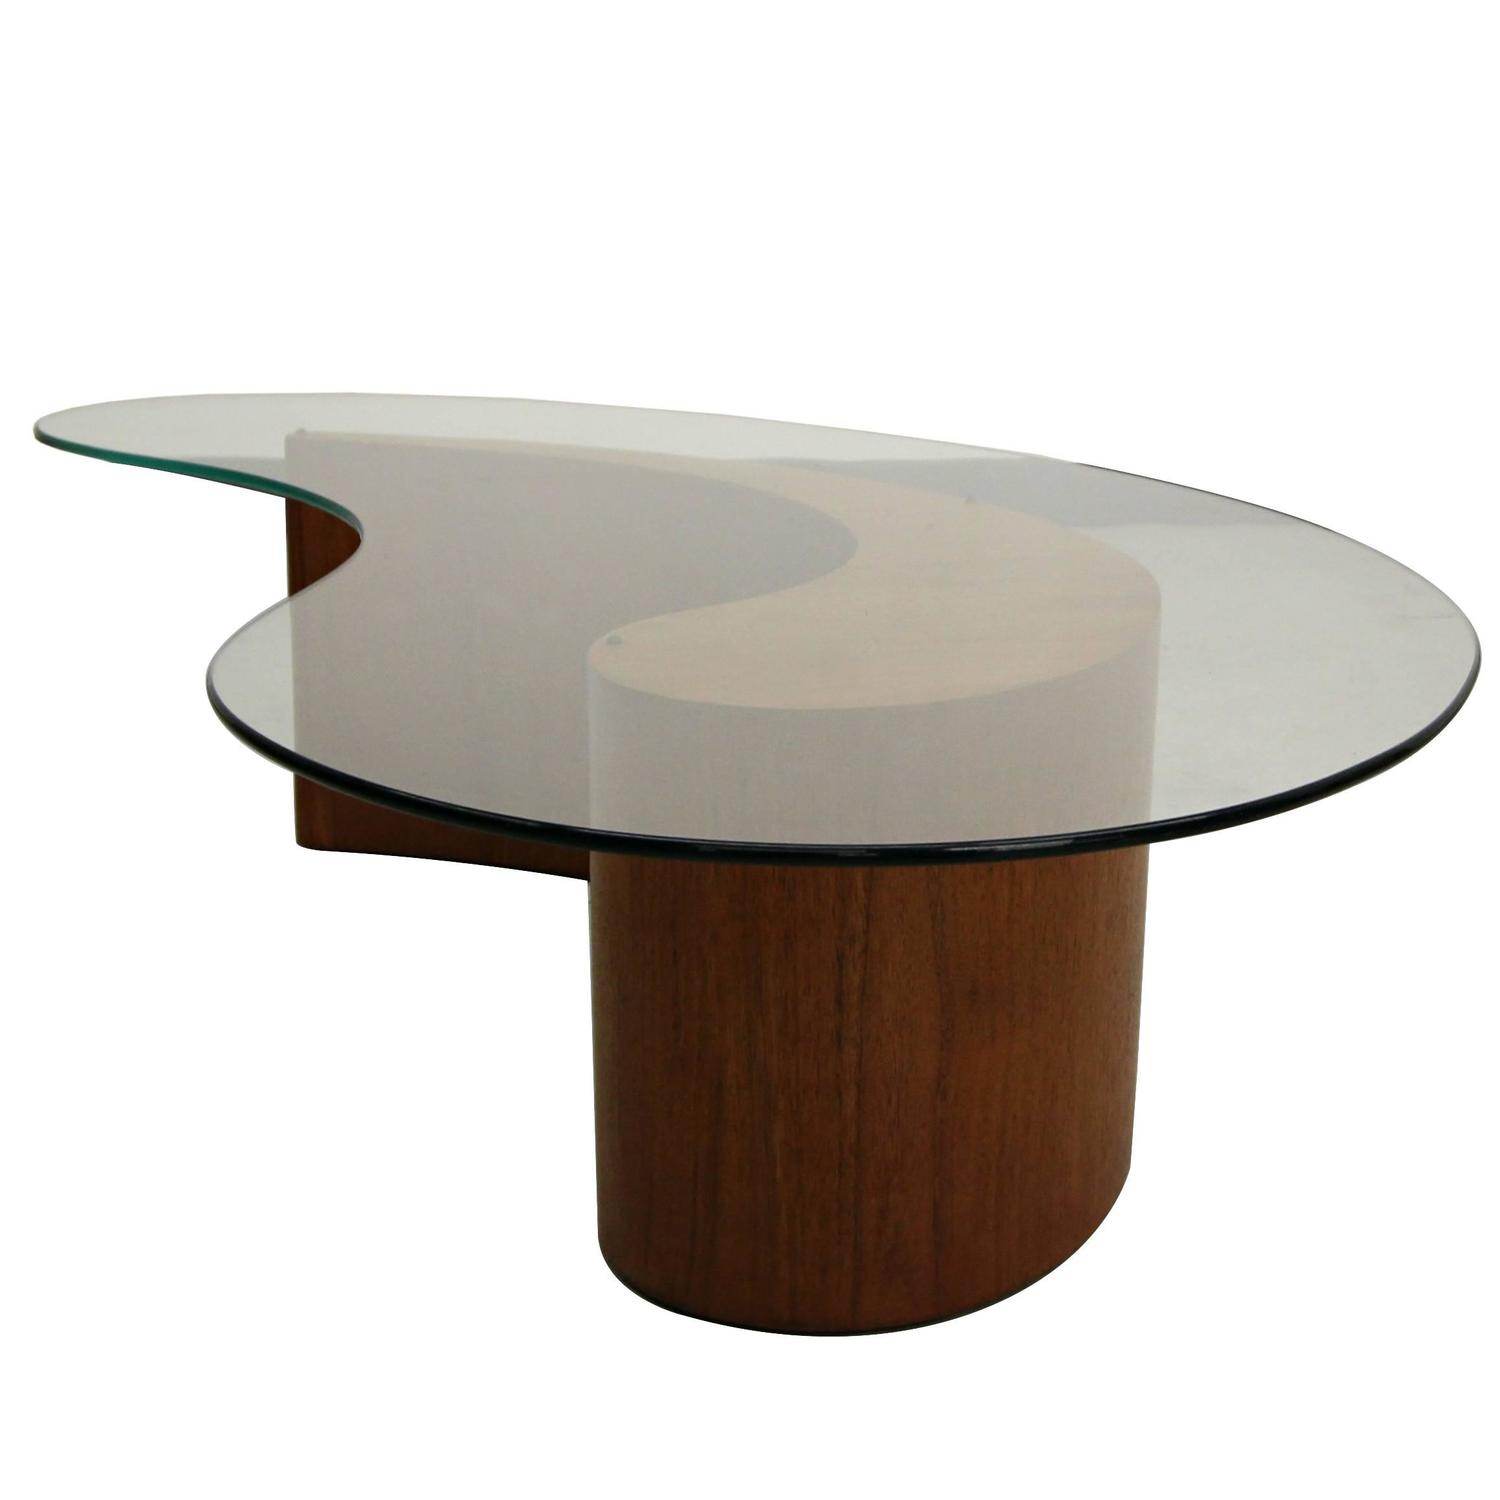 Vladimir Kagan Biomorphic Walnut ma Apostrophe Coffee Table For